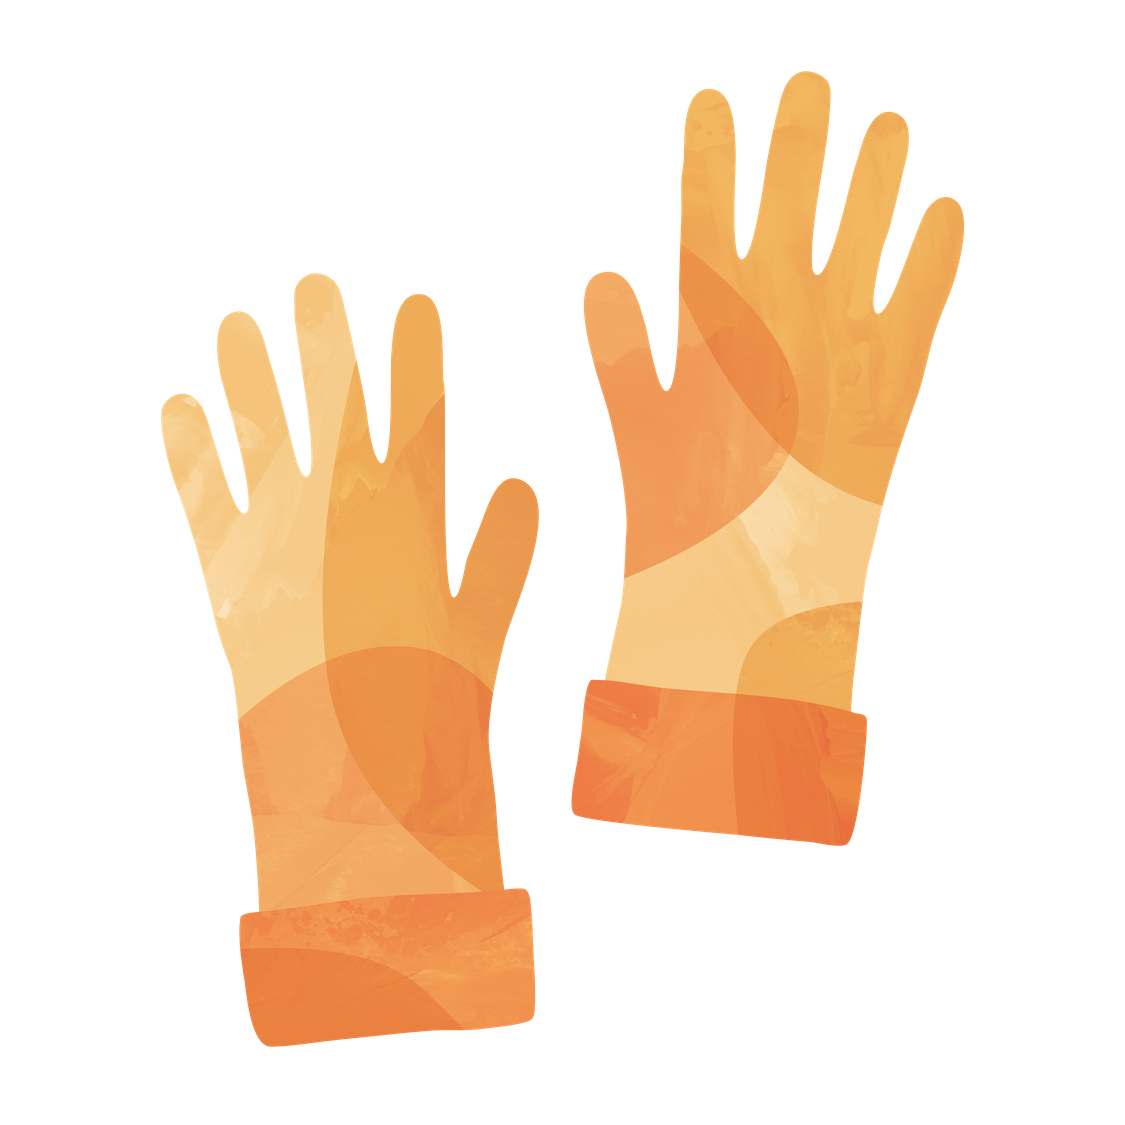 Dish gloves illustration